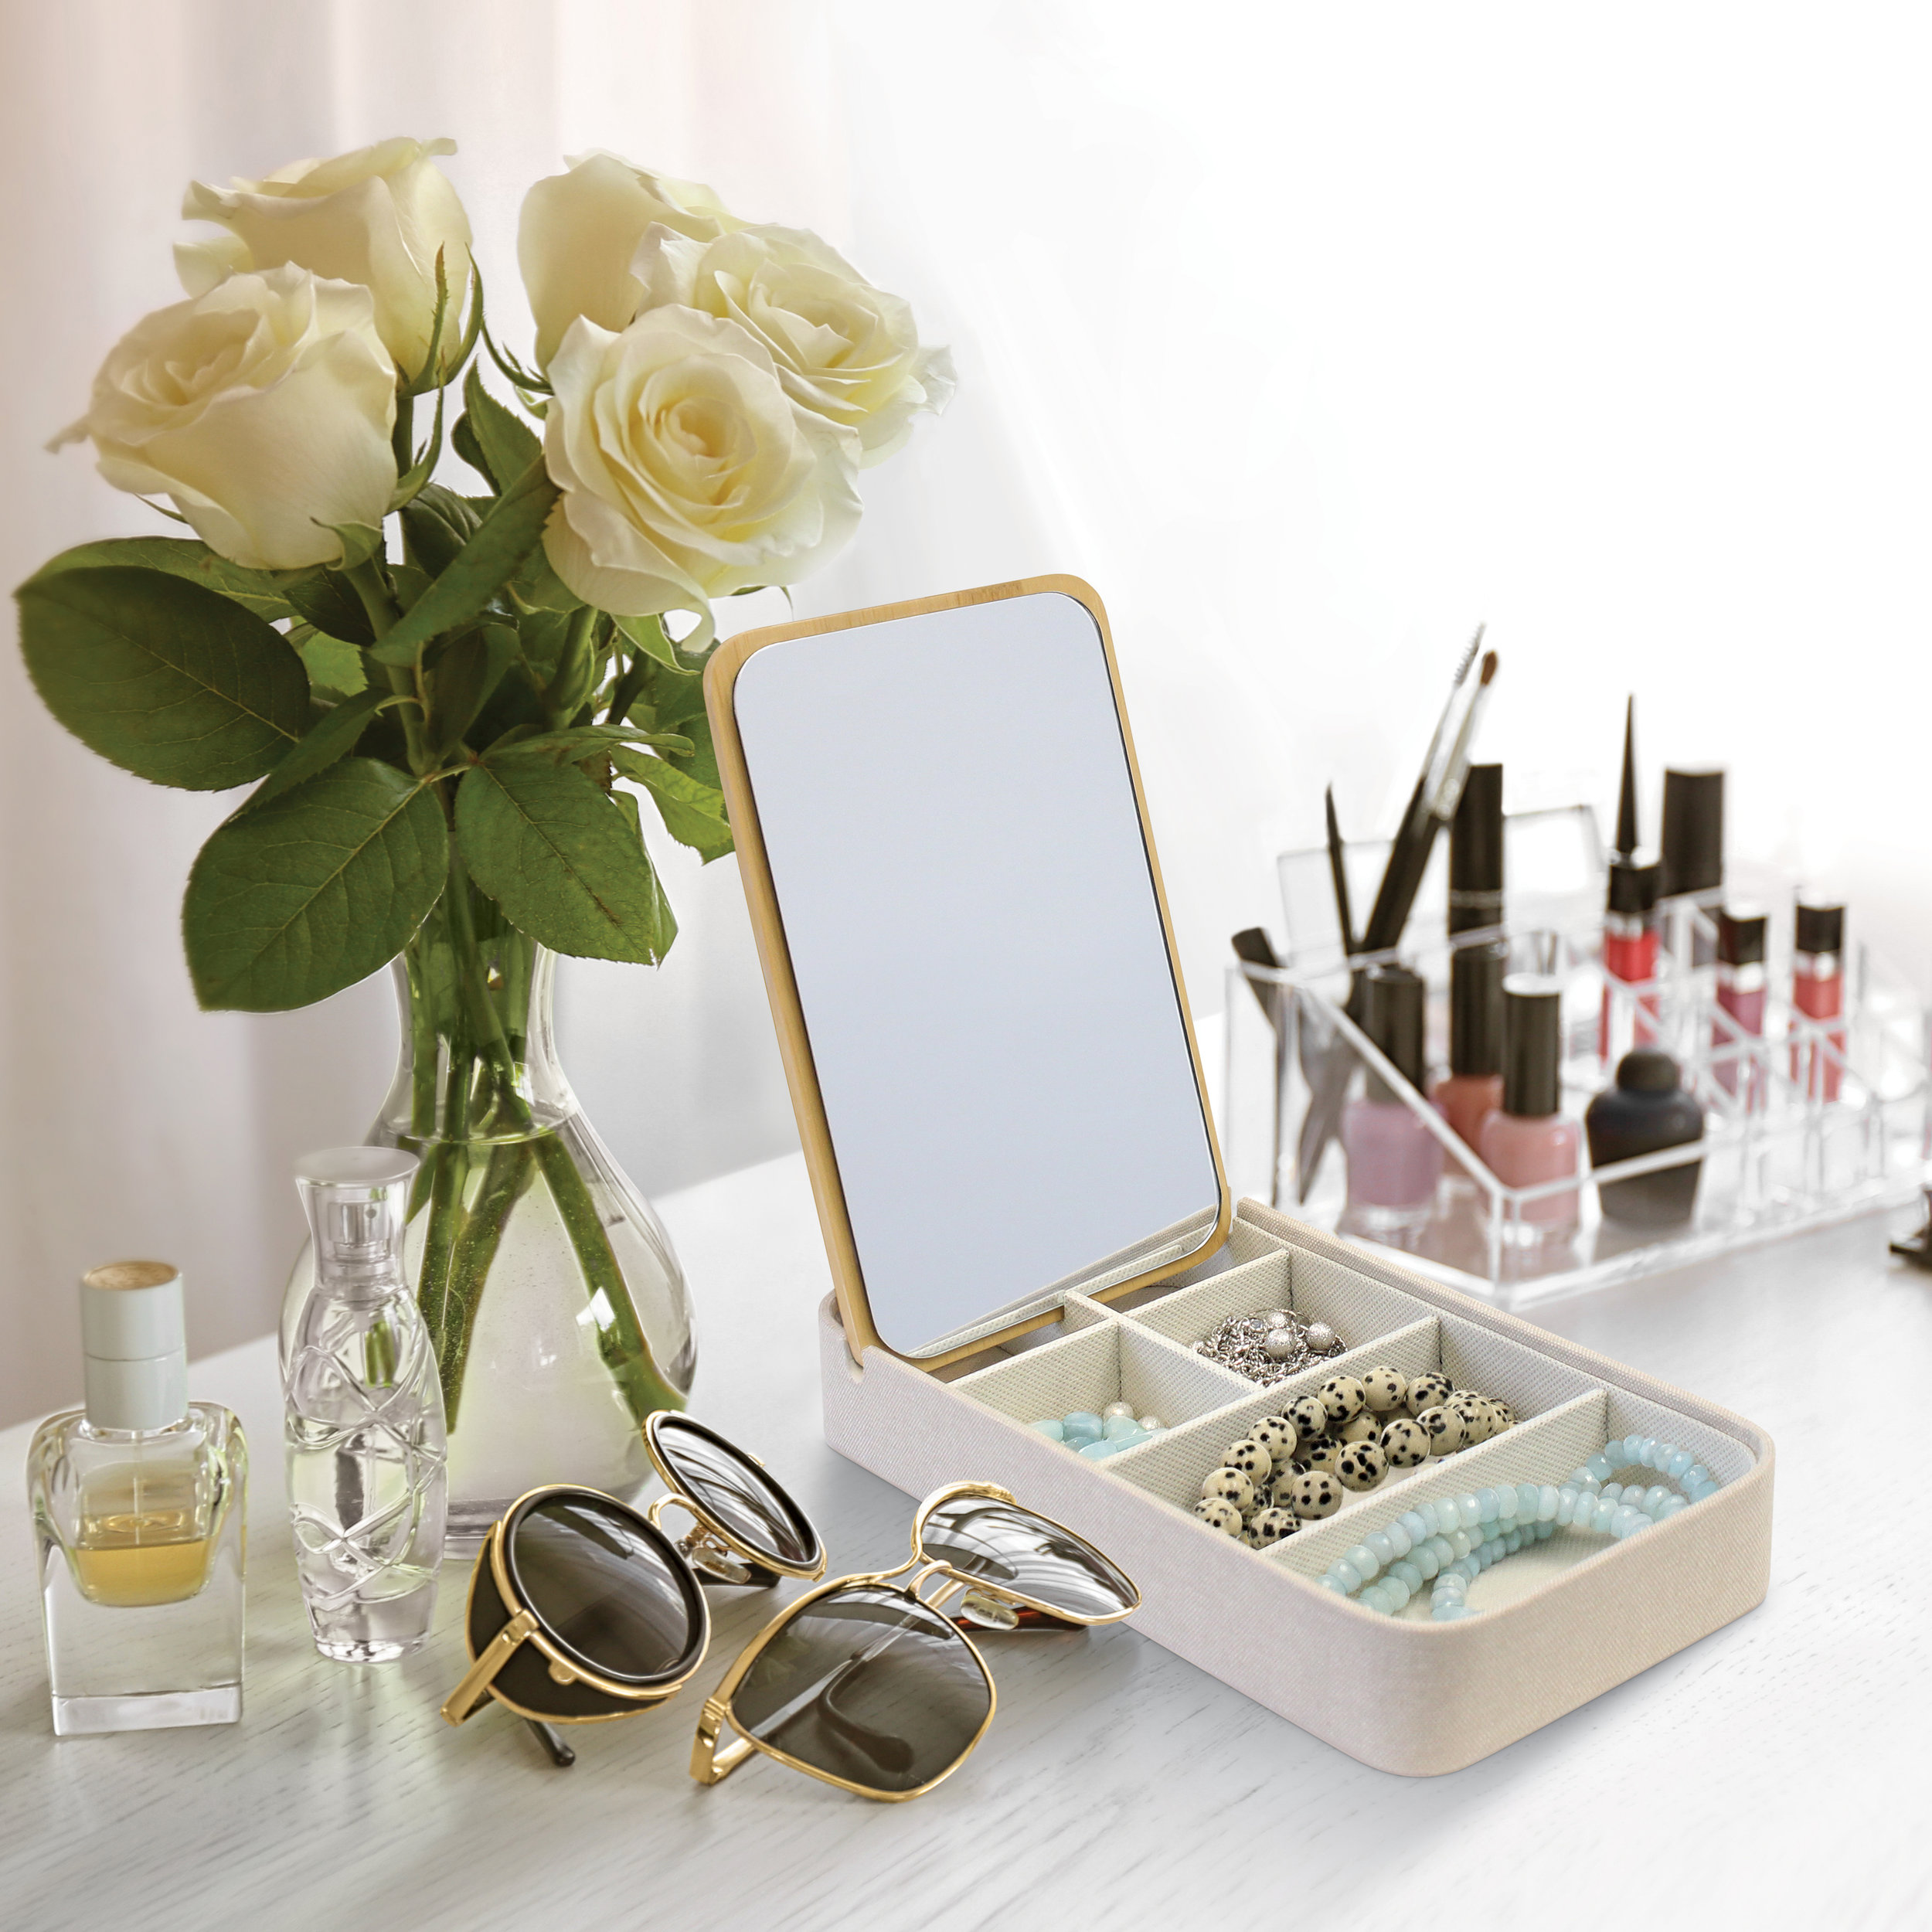 Bathroom Storage - Discover our best sellers